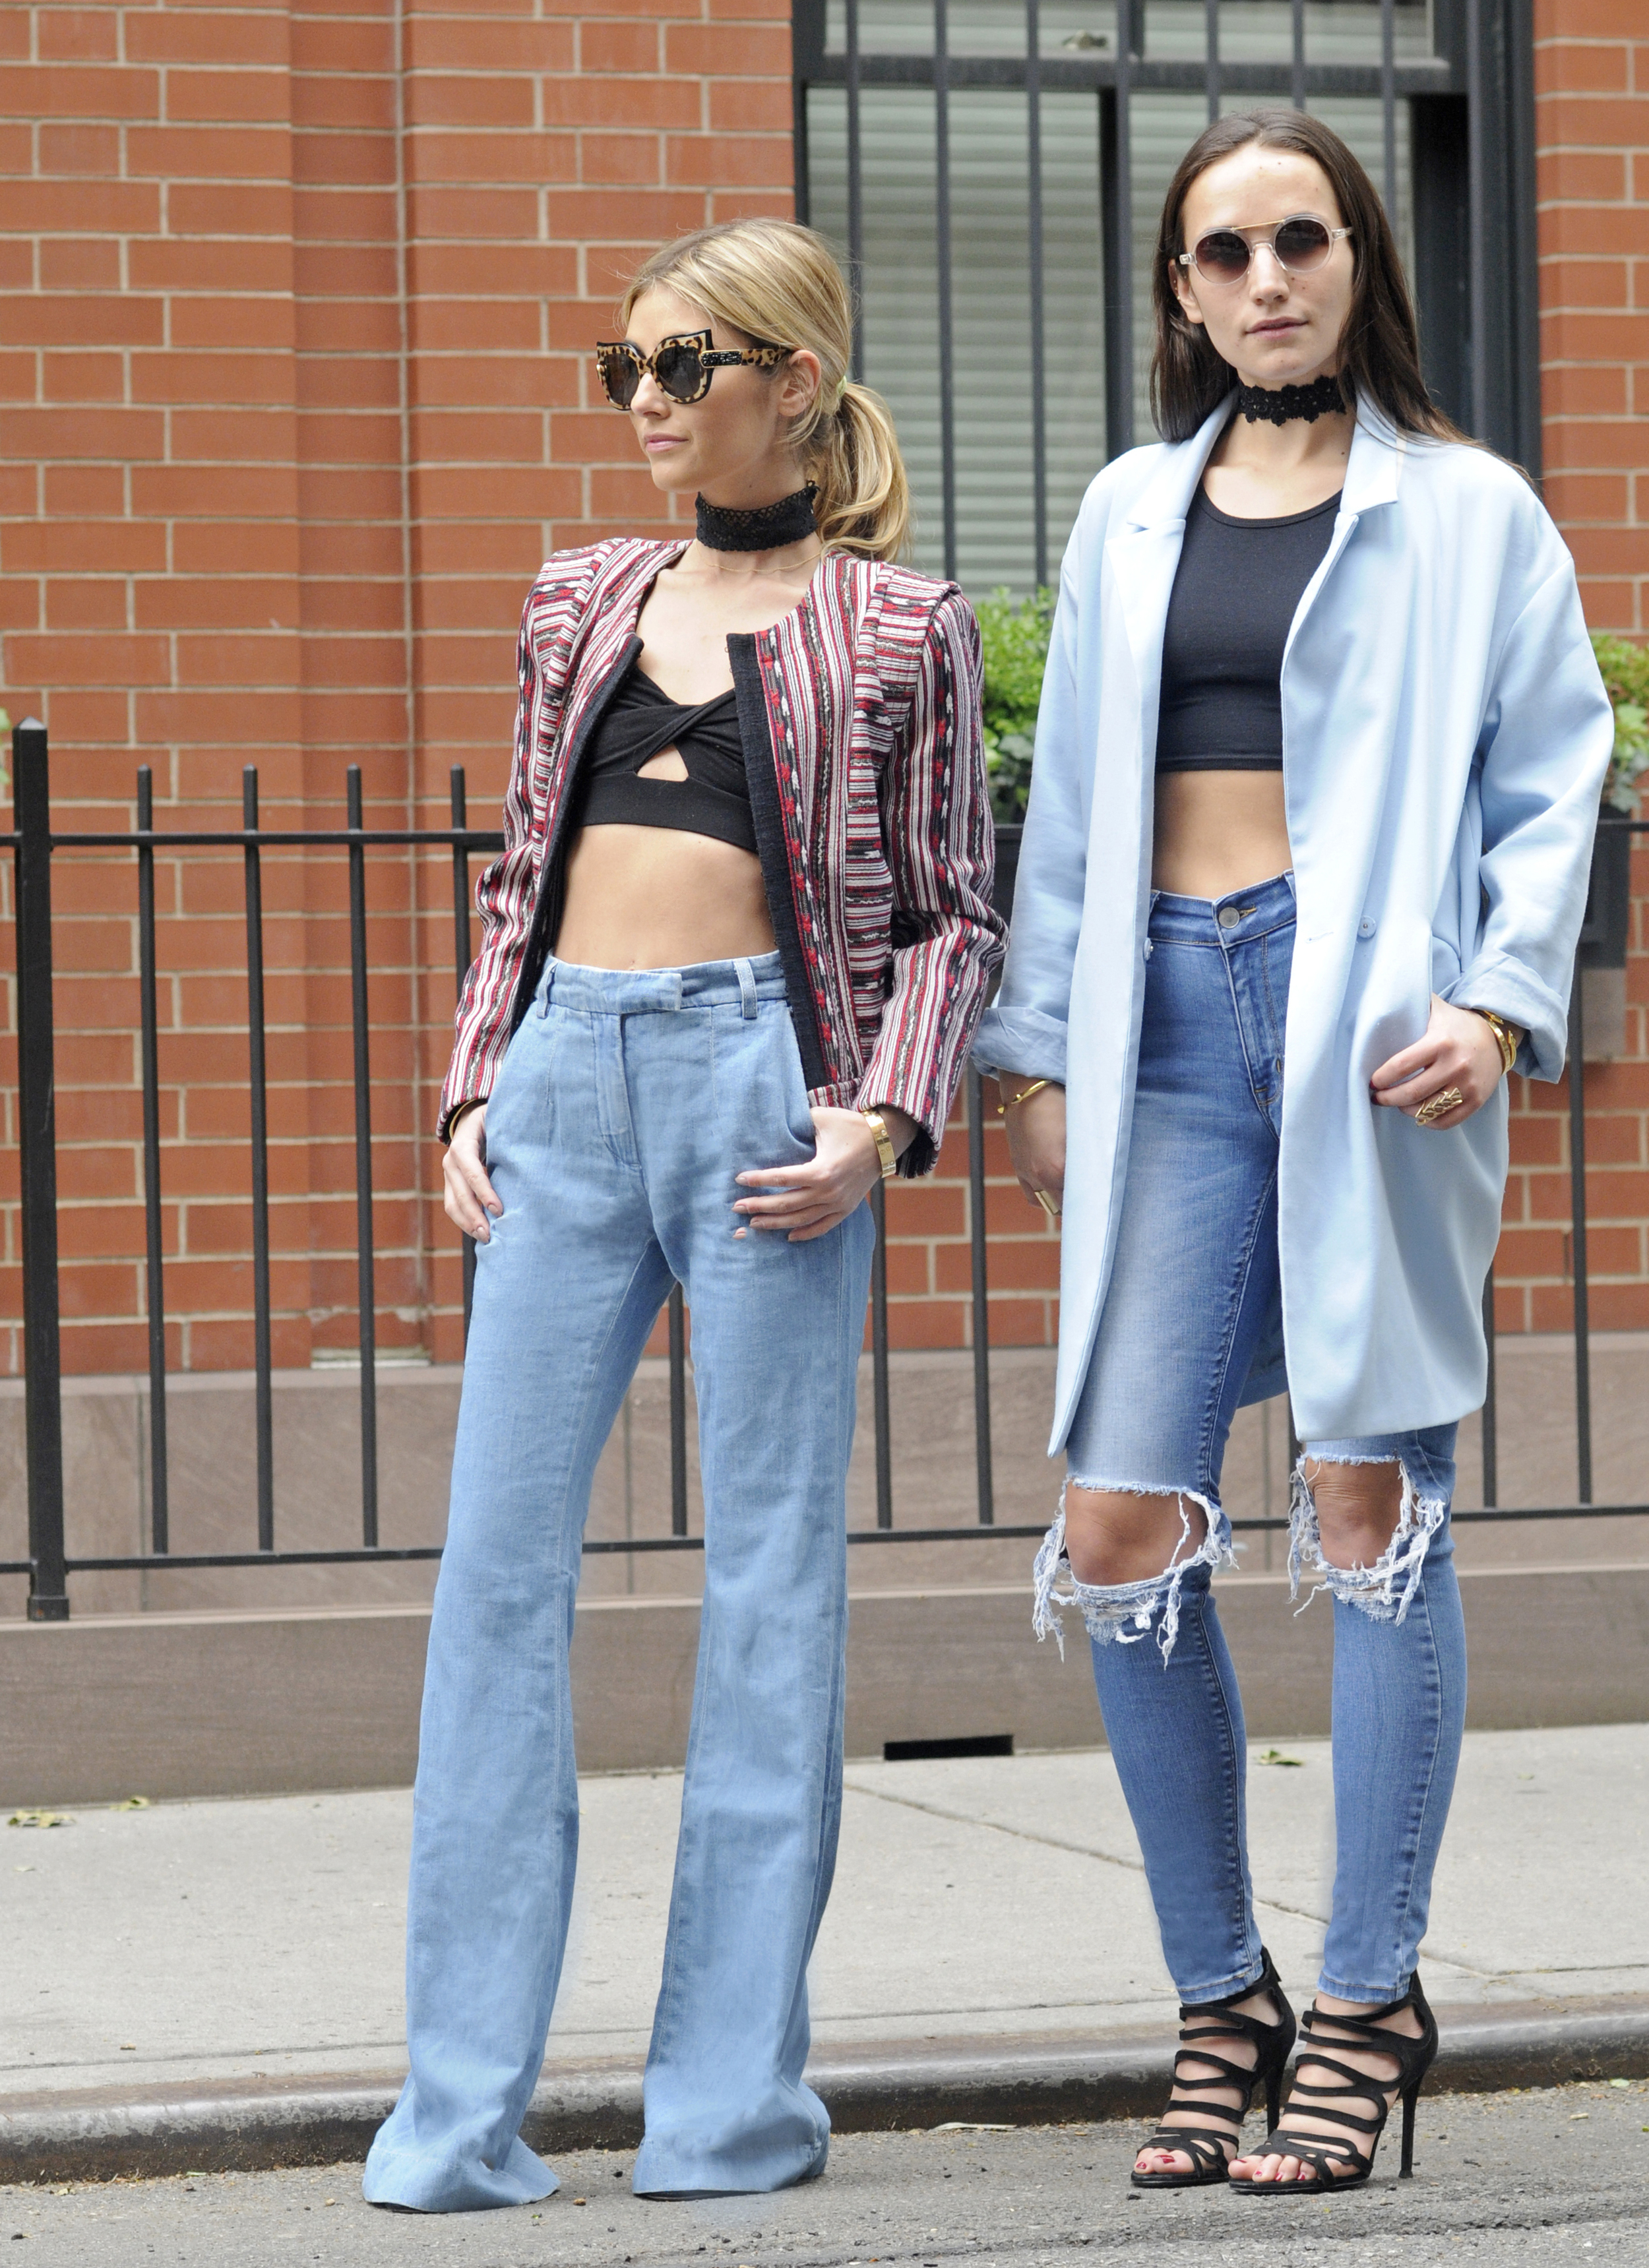 NYC STREET STYLE SISTER BLOGGERS SOPHIE AND CHARLOTTE BICKLEY